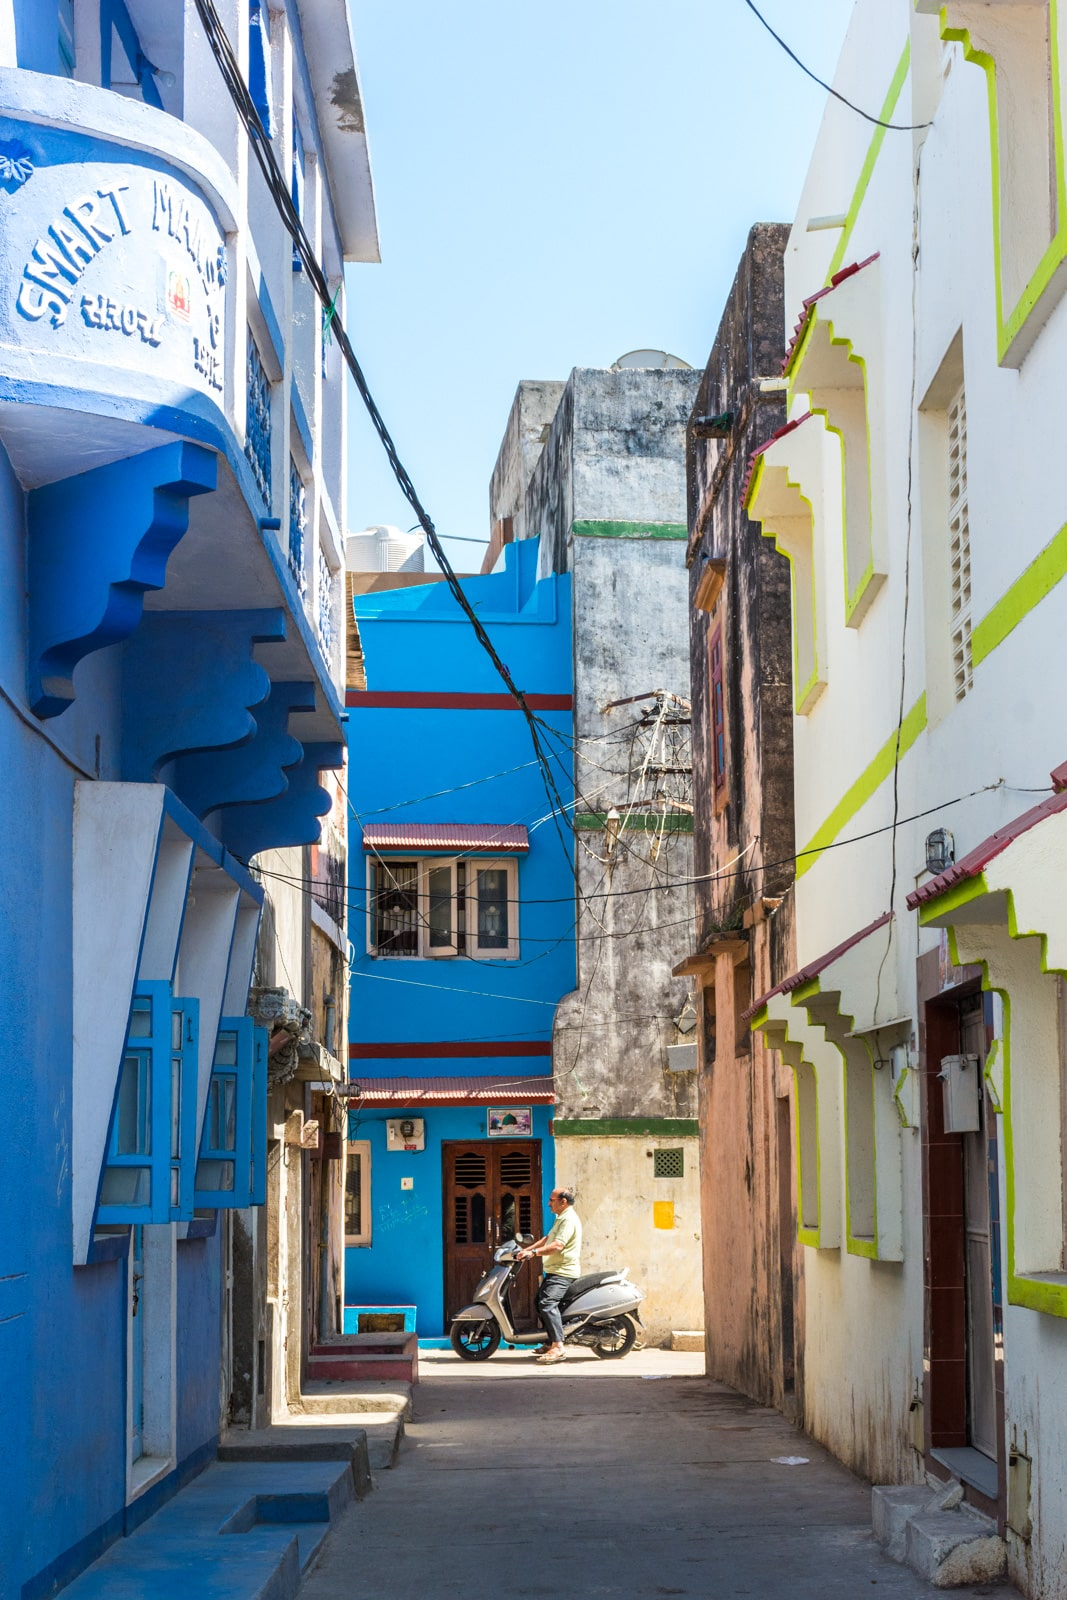 Colorful, winding backstreets of Diu, an island off the west coast of India. Portuguese-influenced Diu is a great Goa alternative if you're looking for somewhere offbeat to relax in India.